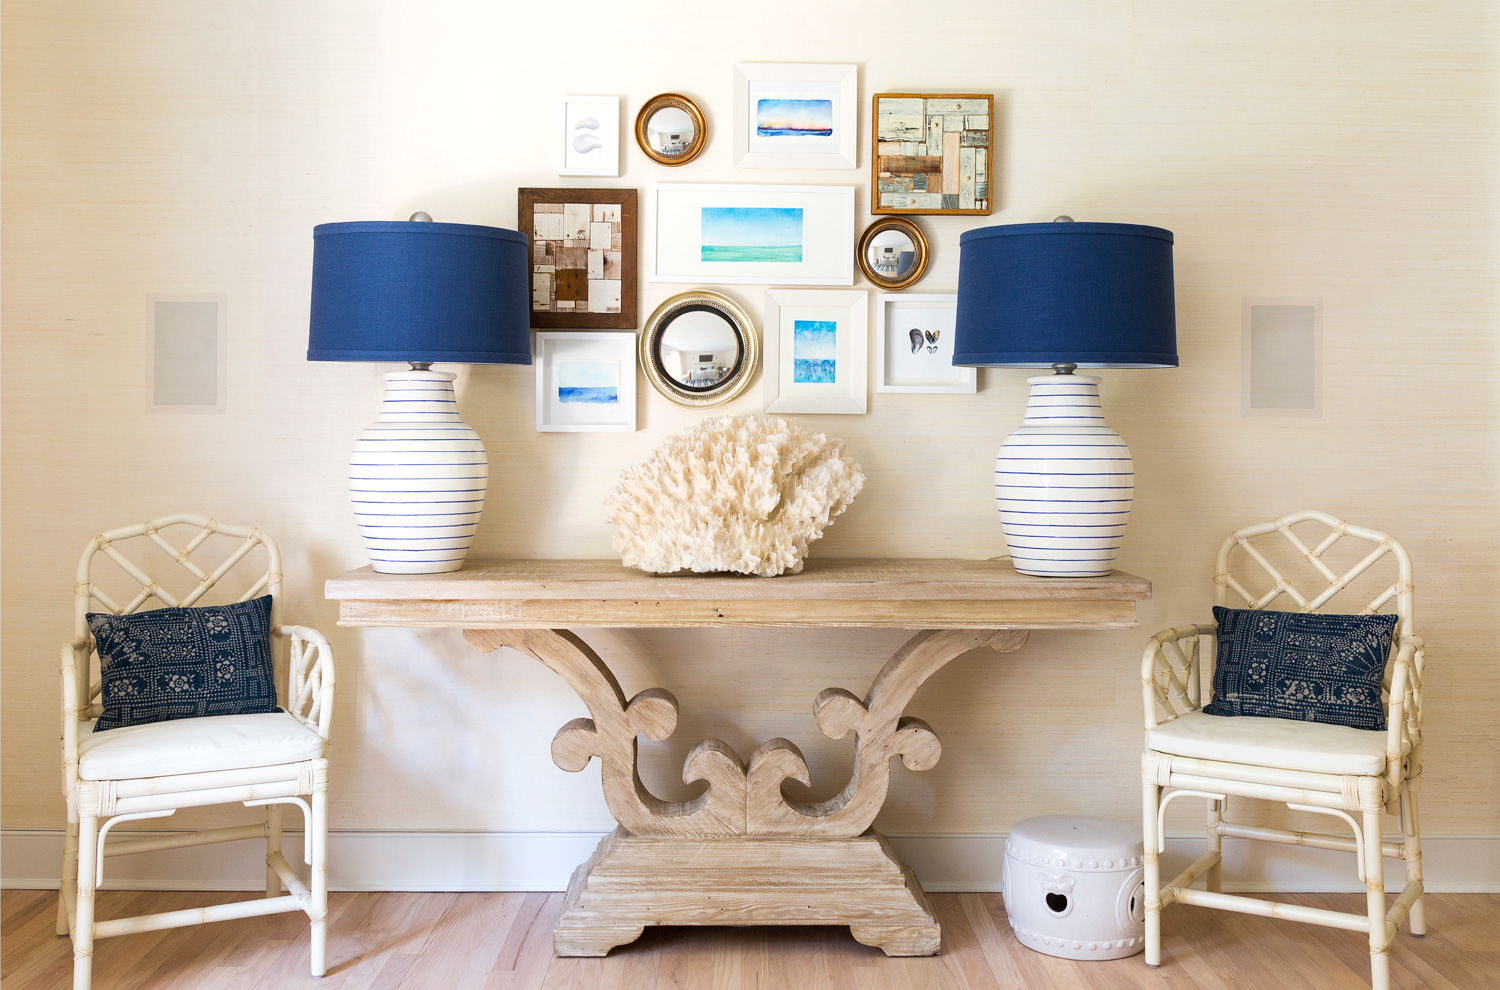 It Is An Essential Tool For Companies Active Across The Indian Interior Design Products Market Including Producers And Distributors New Competitors